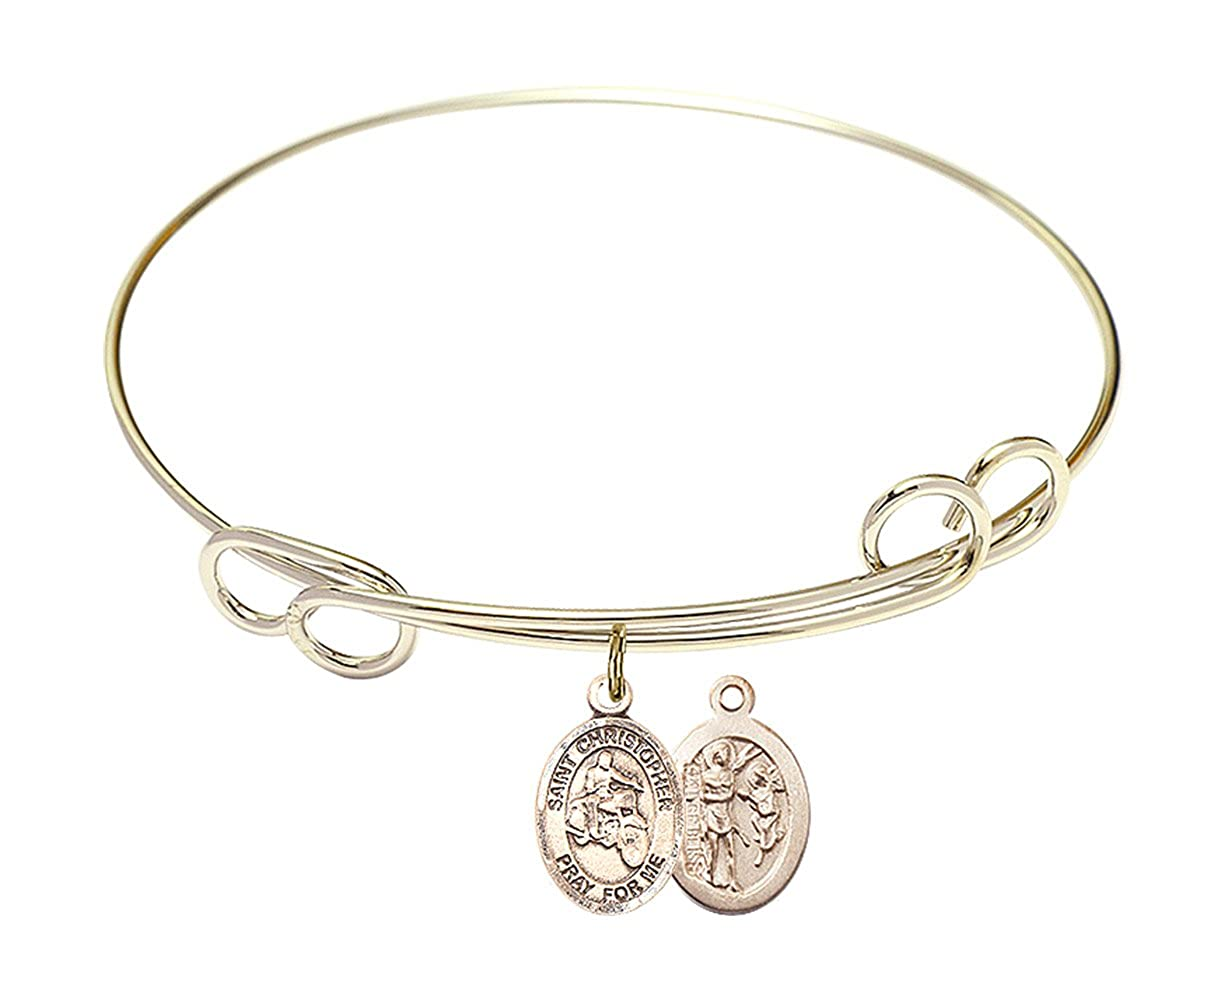 Bonyak Jewelry Round Double Loop Bangle Bracelet w//St Christopher//Motorcycle in Gold-Filled